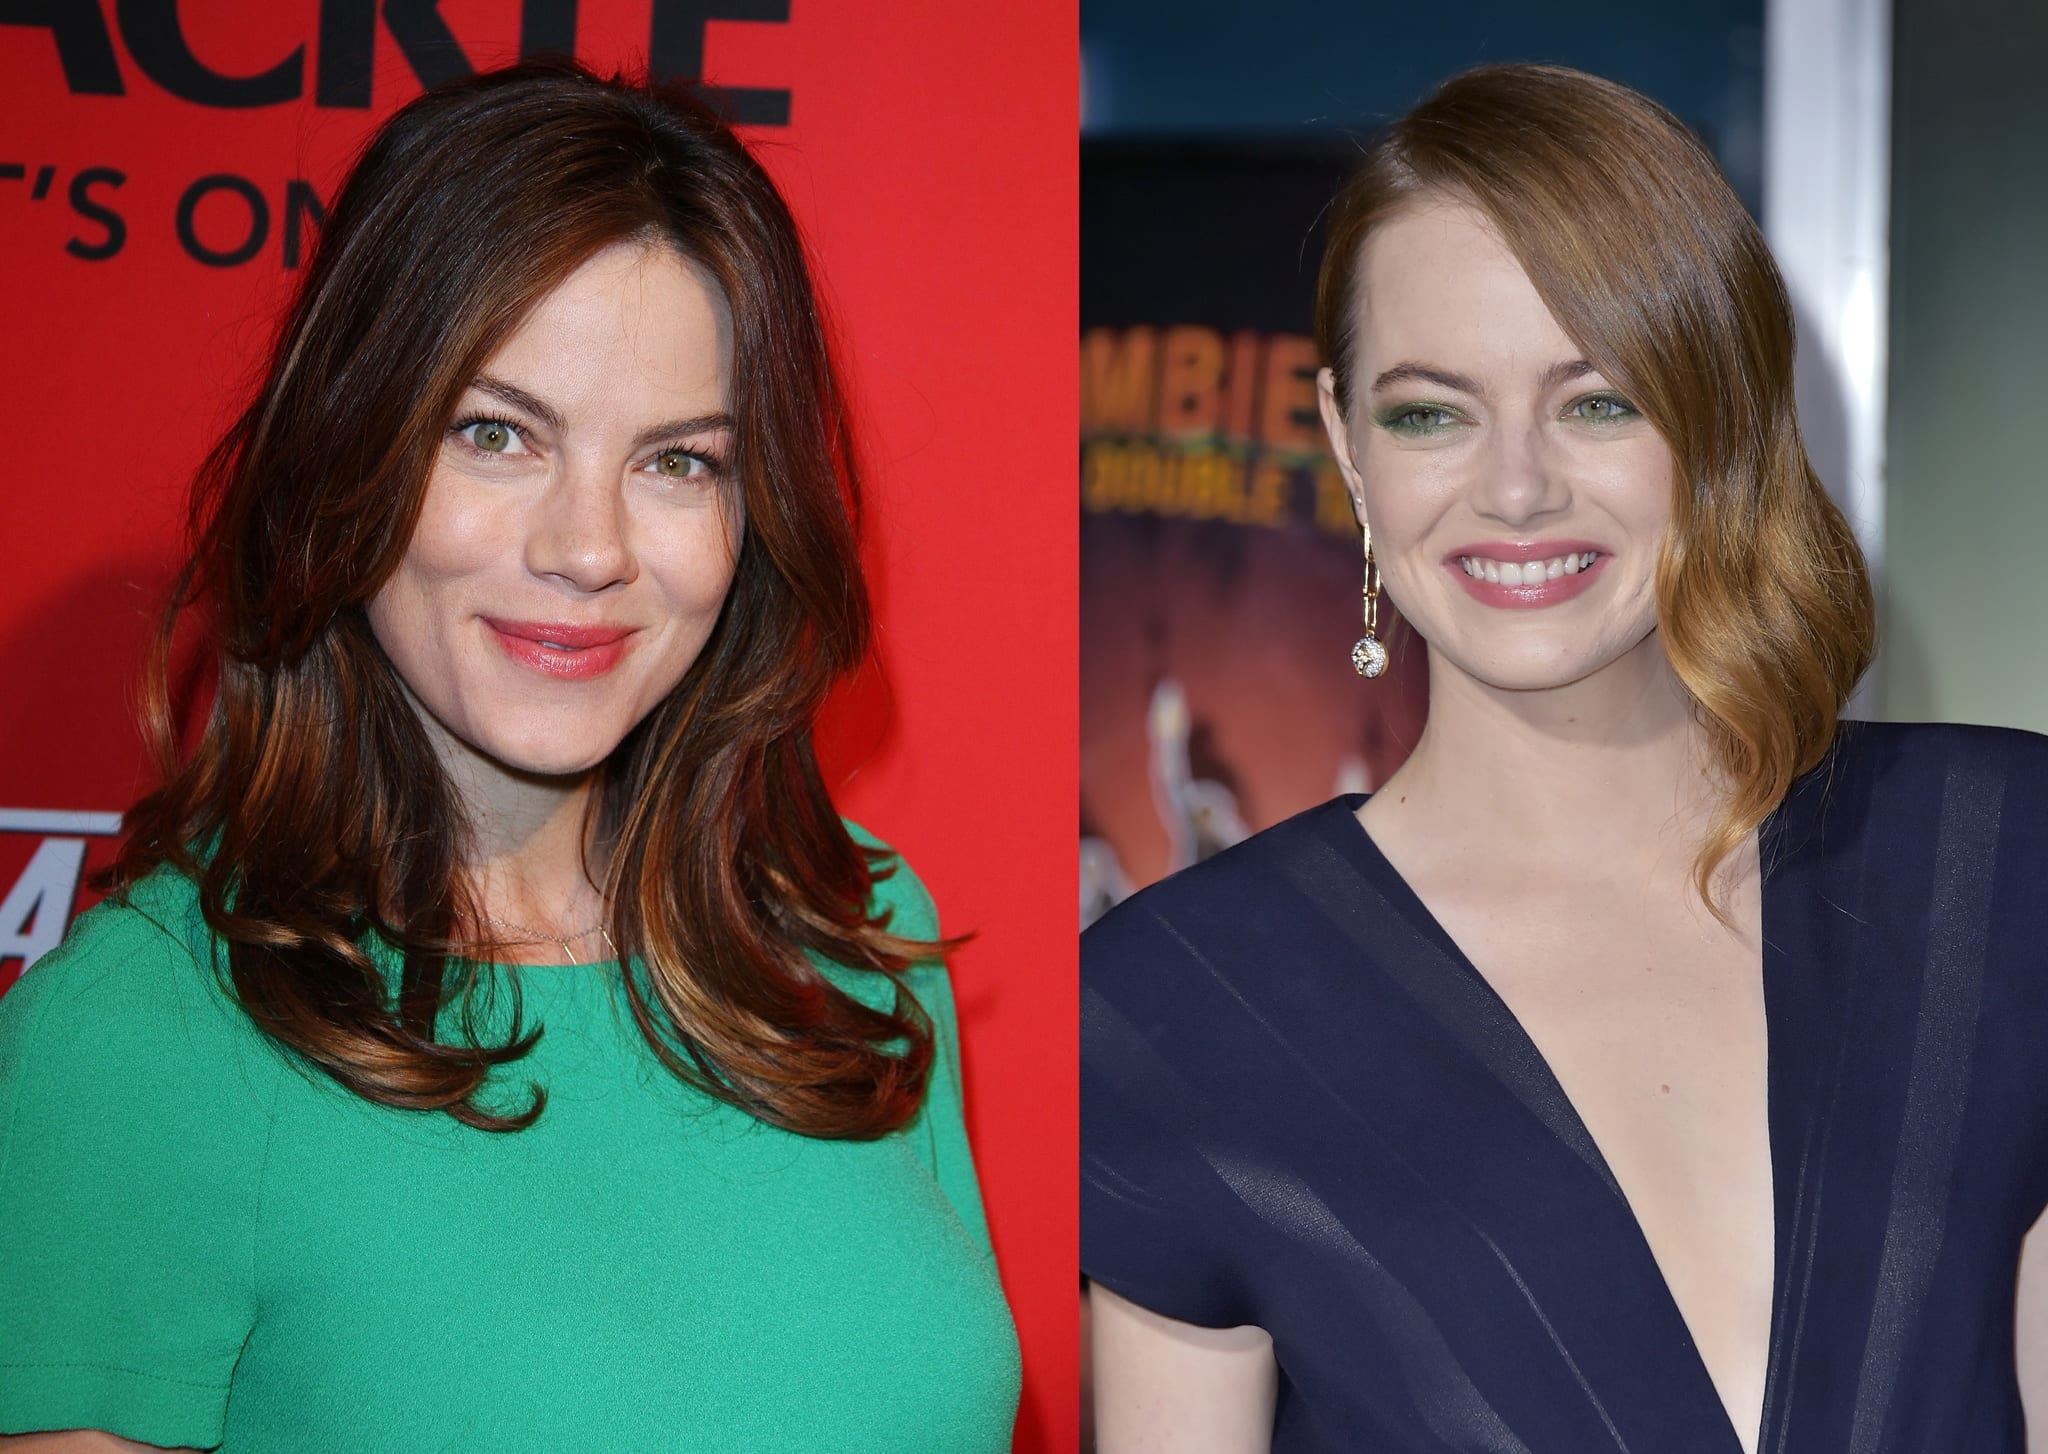 Michelle Monaghan and Emma Stone may look alike but are not related